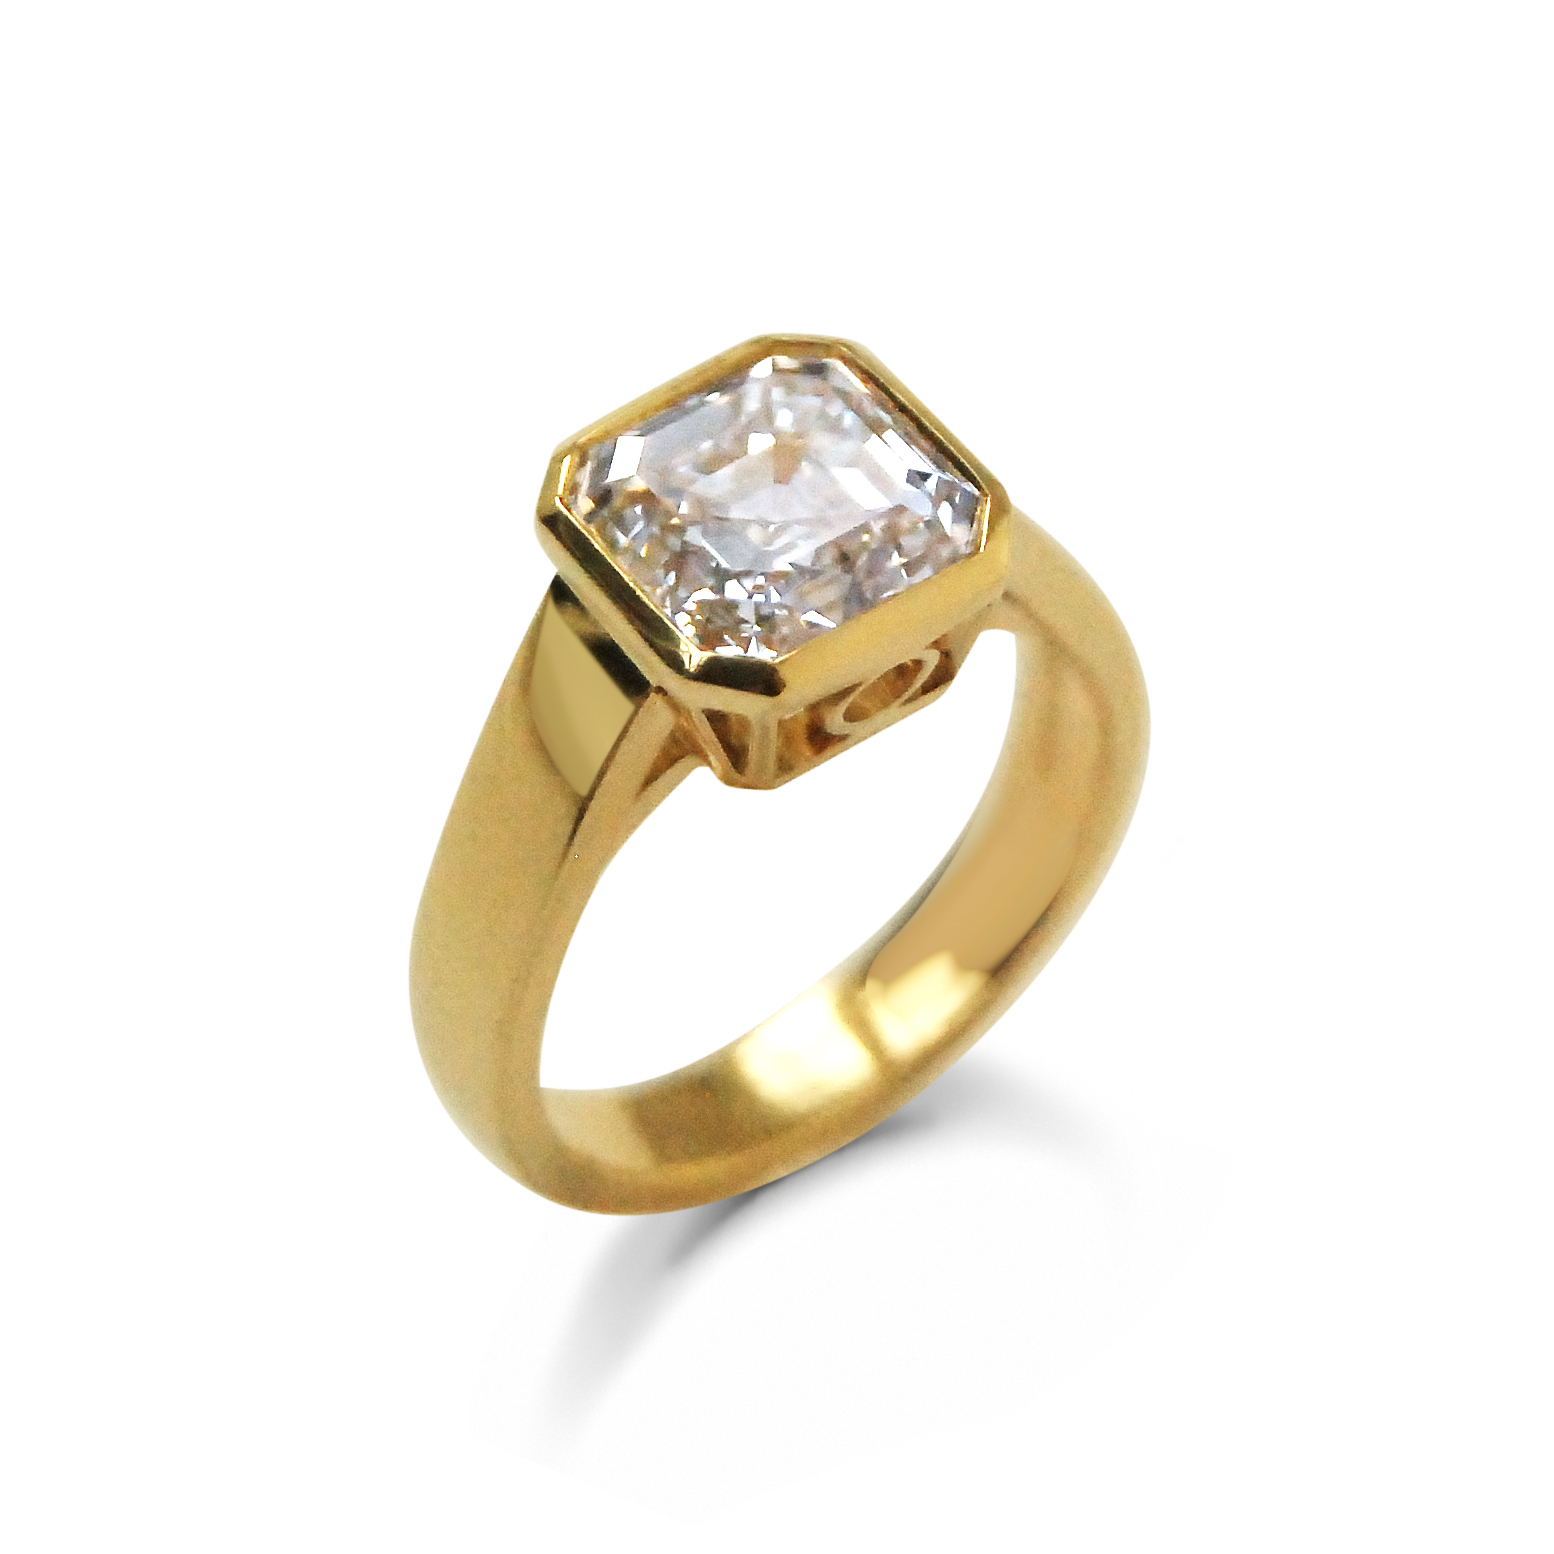 Asscher-cut-diamond-and-yellow-gold-ring-2.jpg